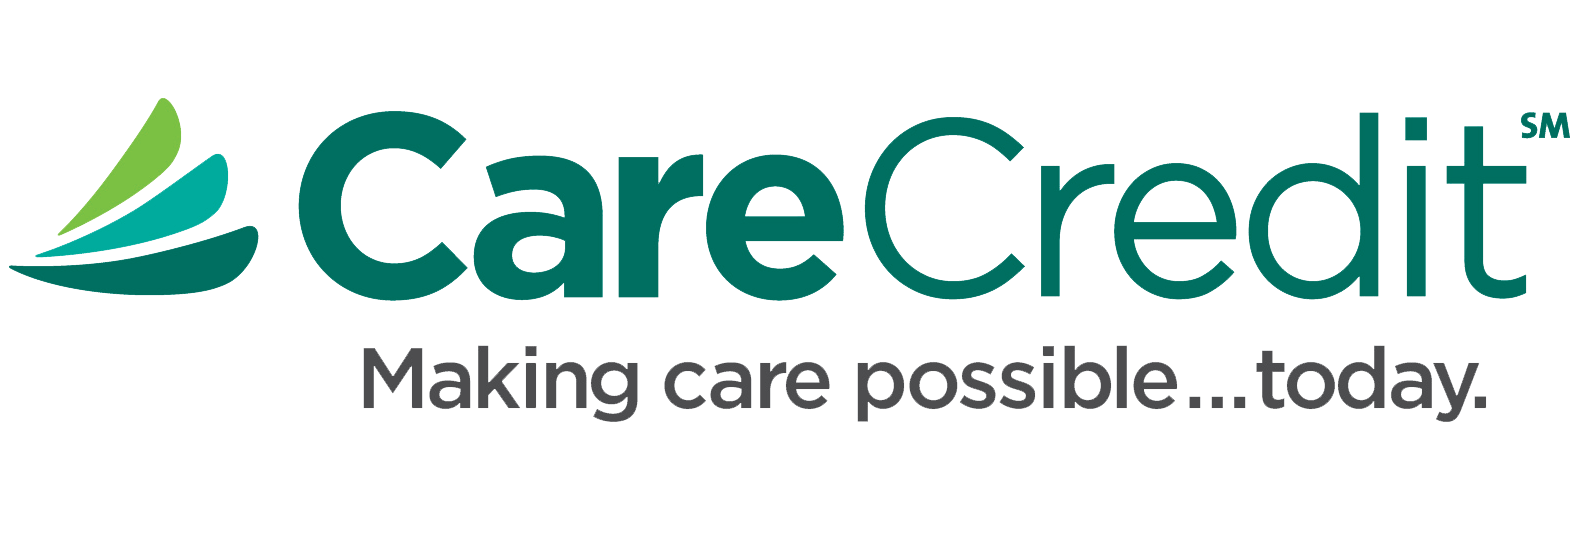 care-credit-logo-png-8